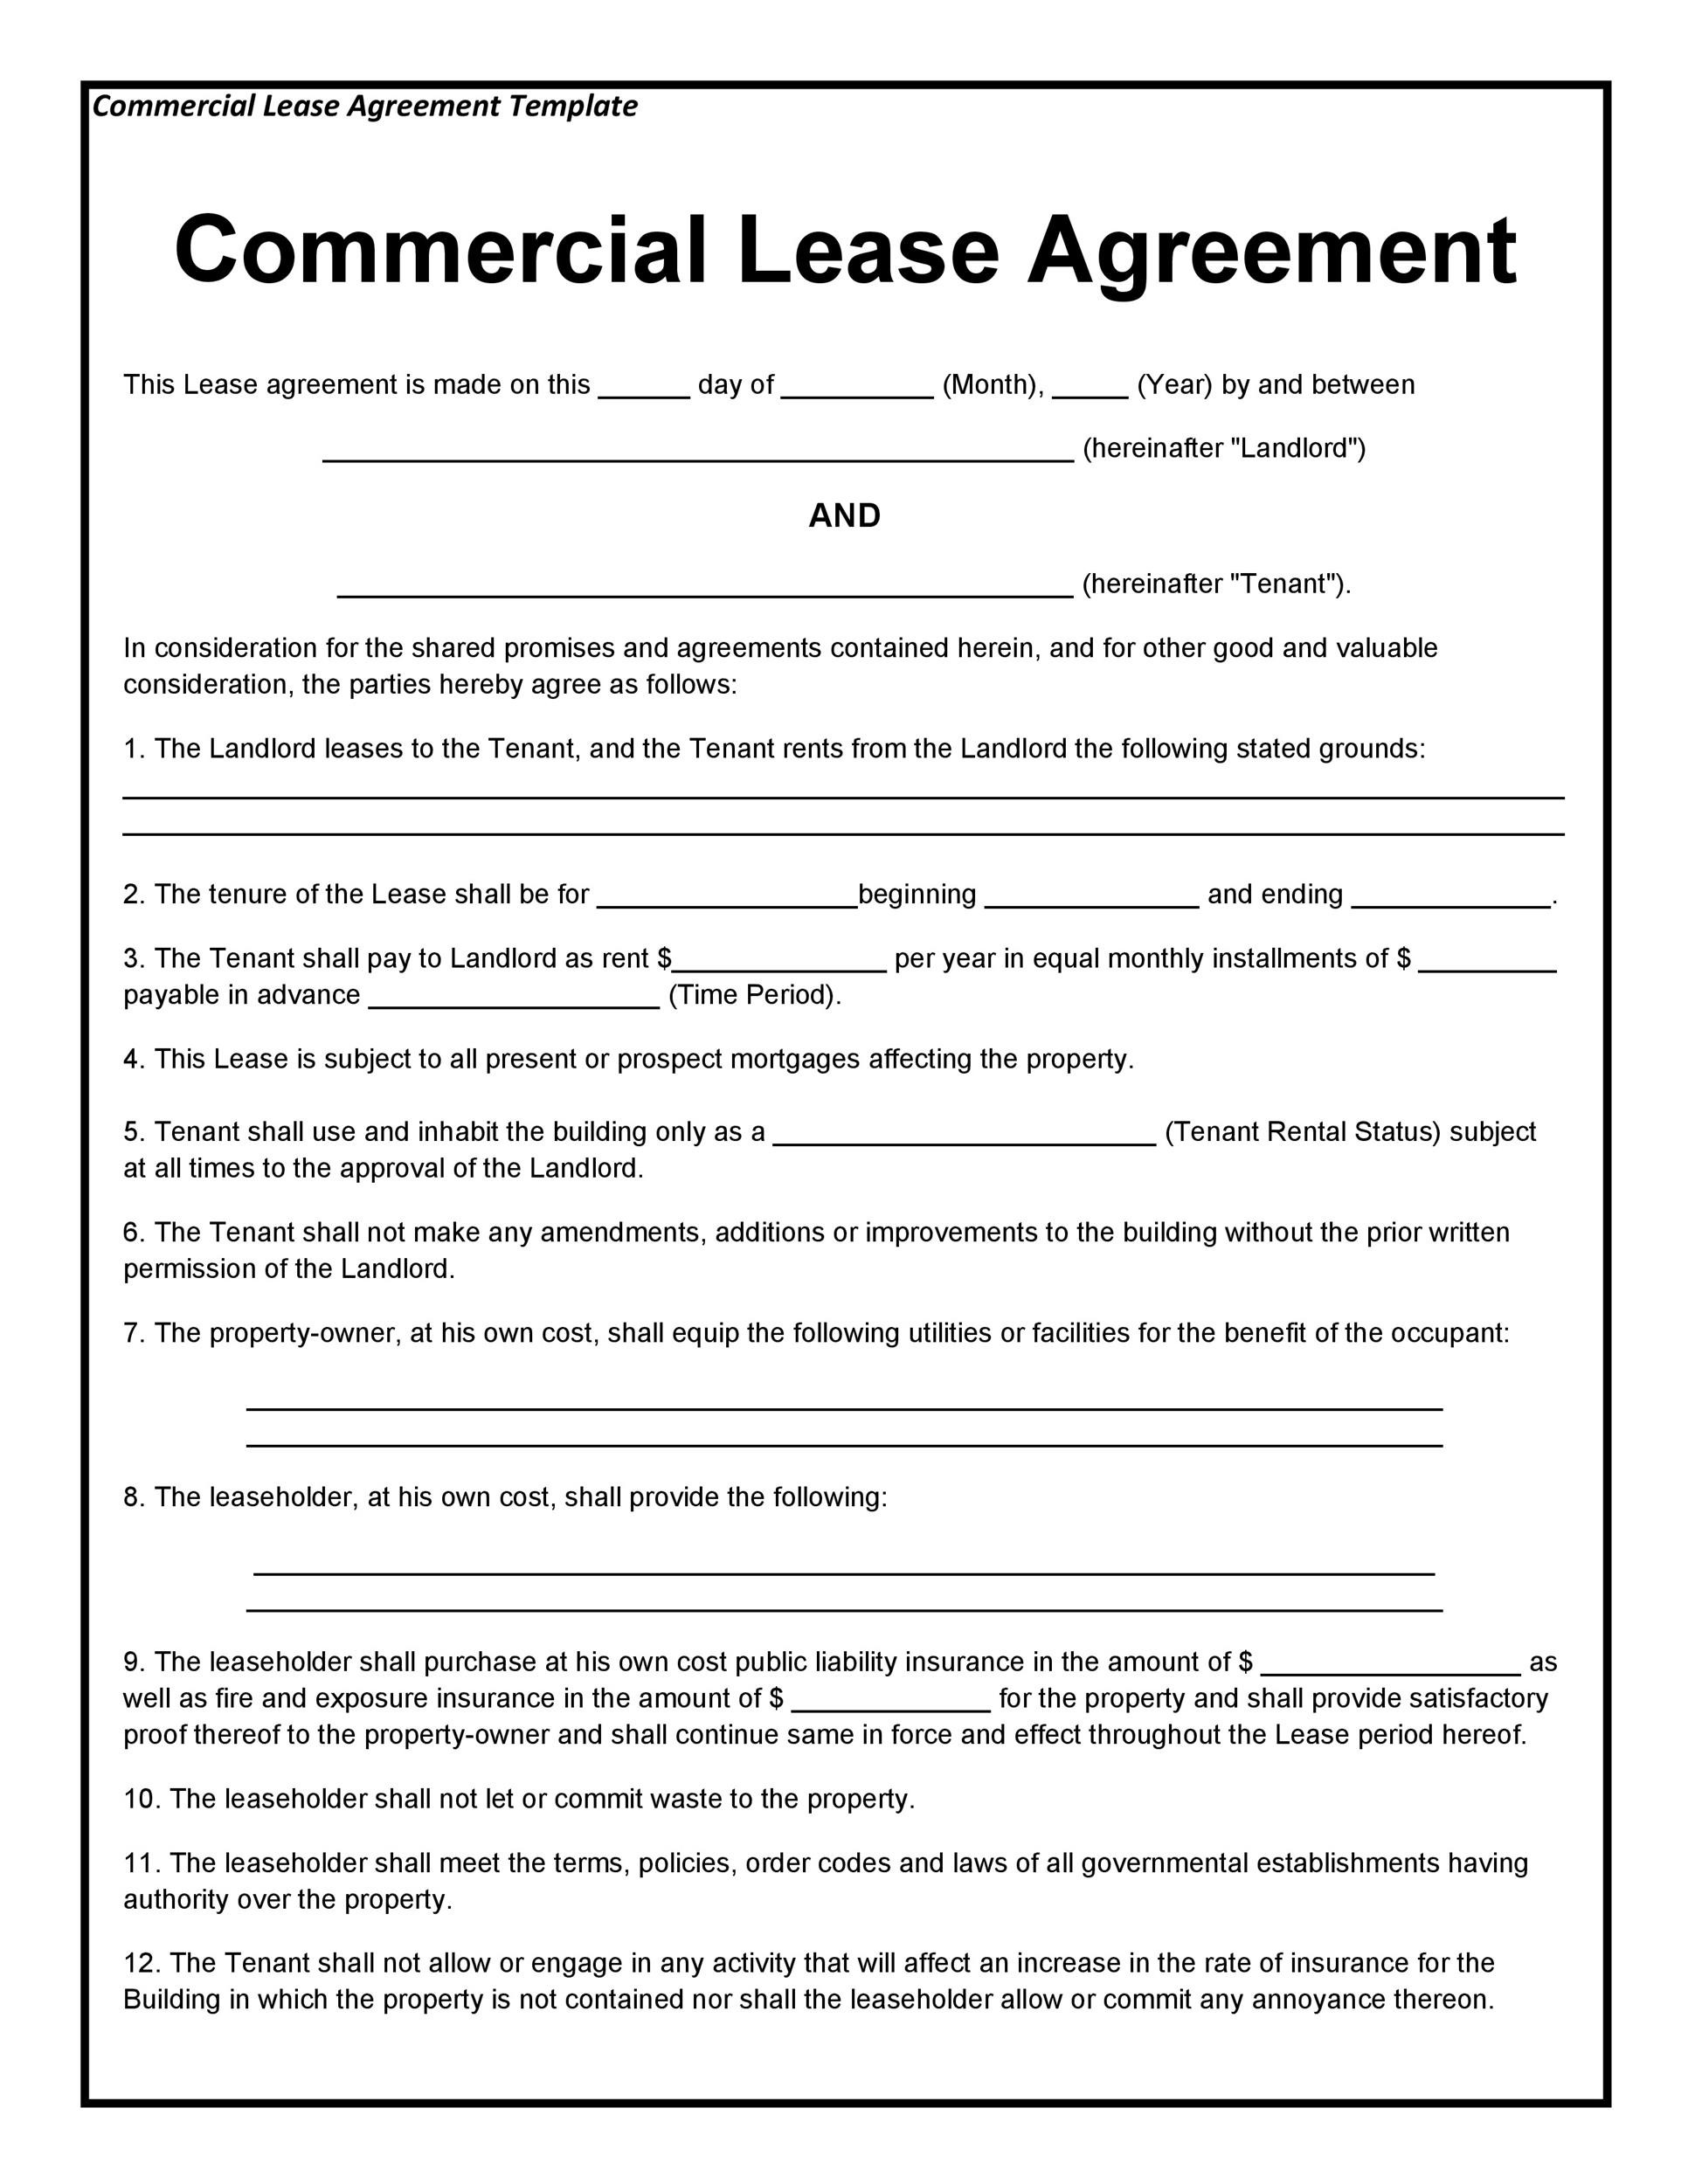 Free Commercial Lease Agreement Template 04